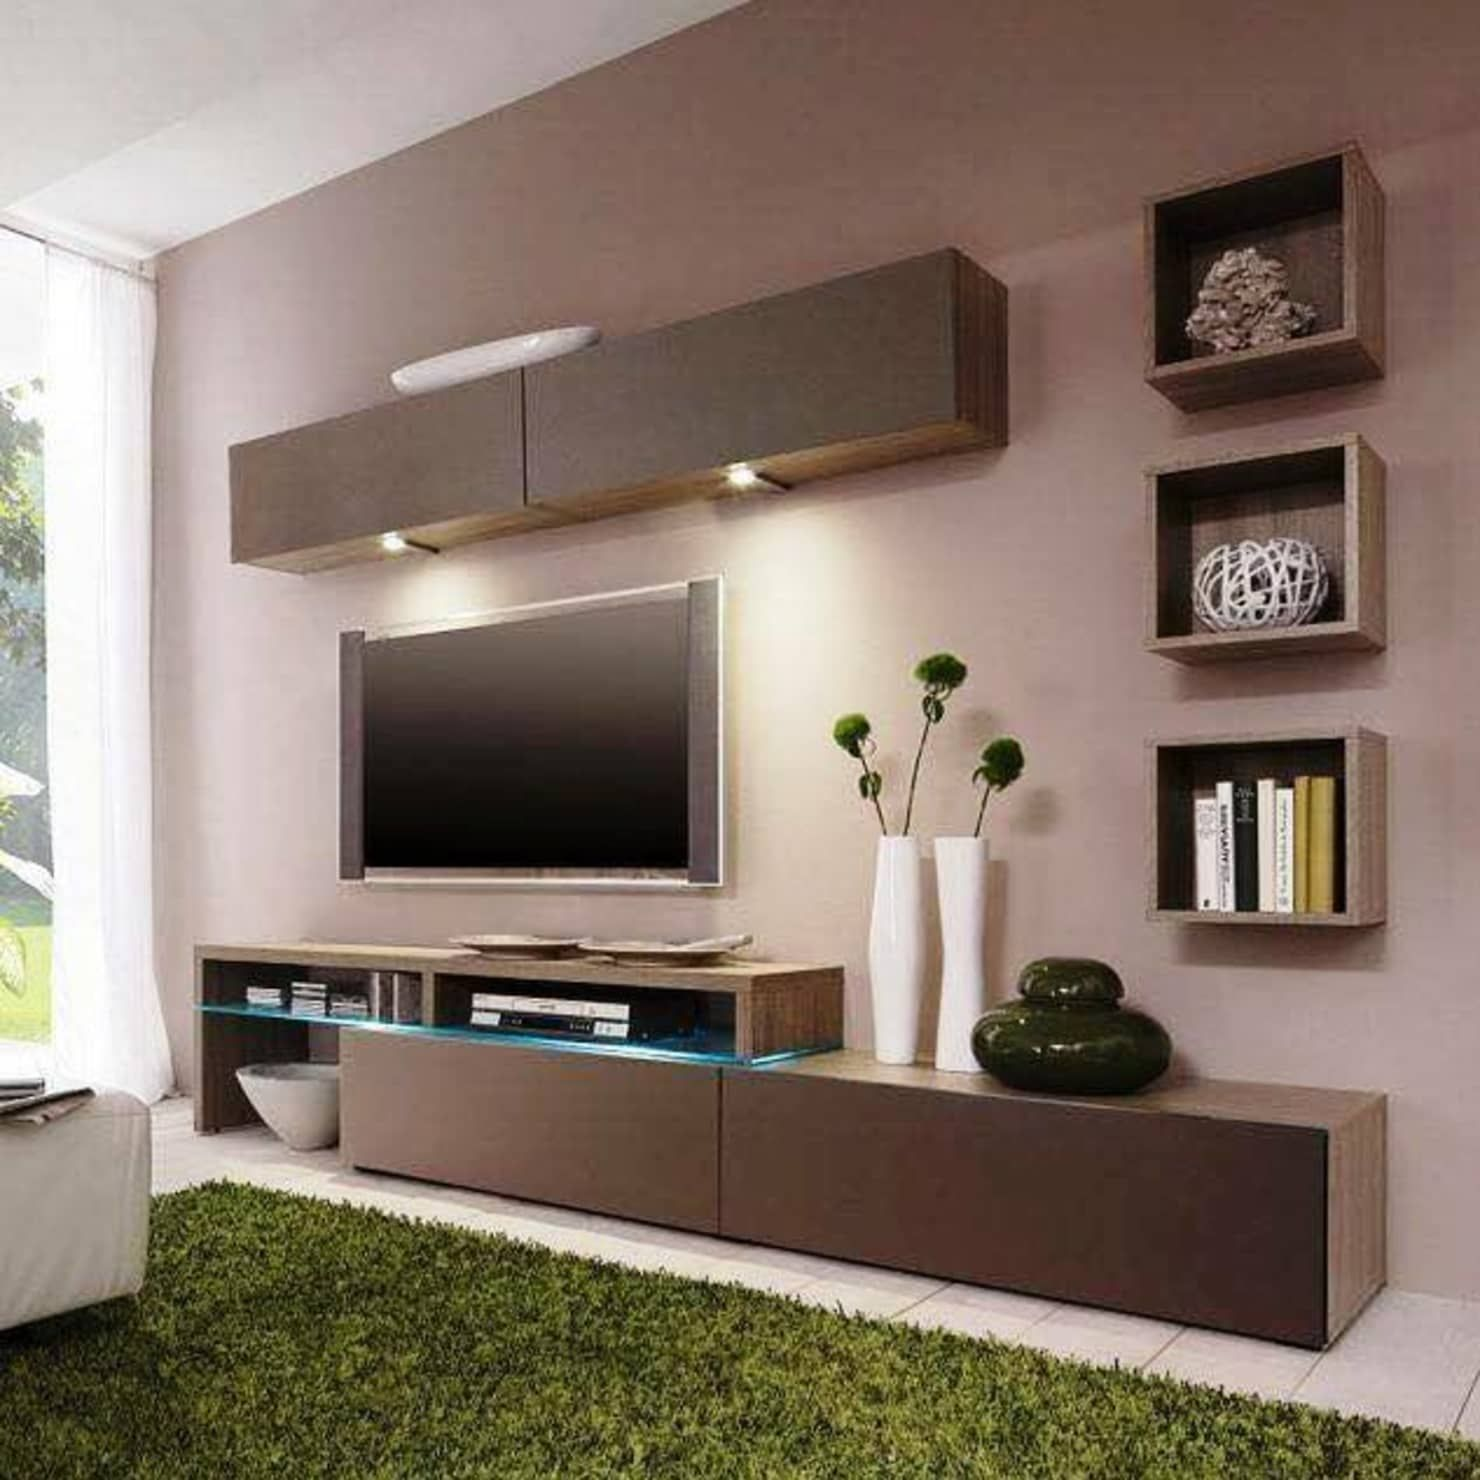 Modern Tv Cabinet Wall Unit Living Room Innoire Design Living Roomtv Stands Cabinets Homify Living Room Tv Cabinet Living Room Modern Living Room Tv Wall